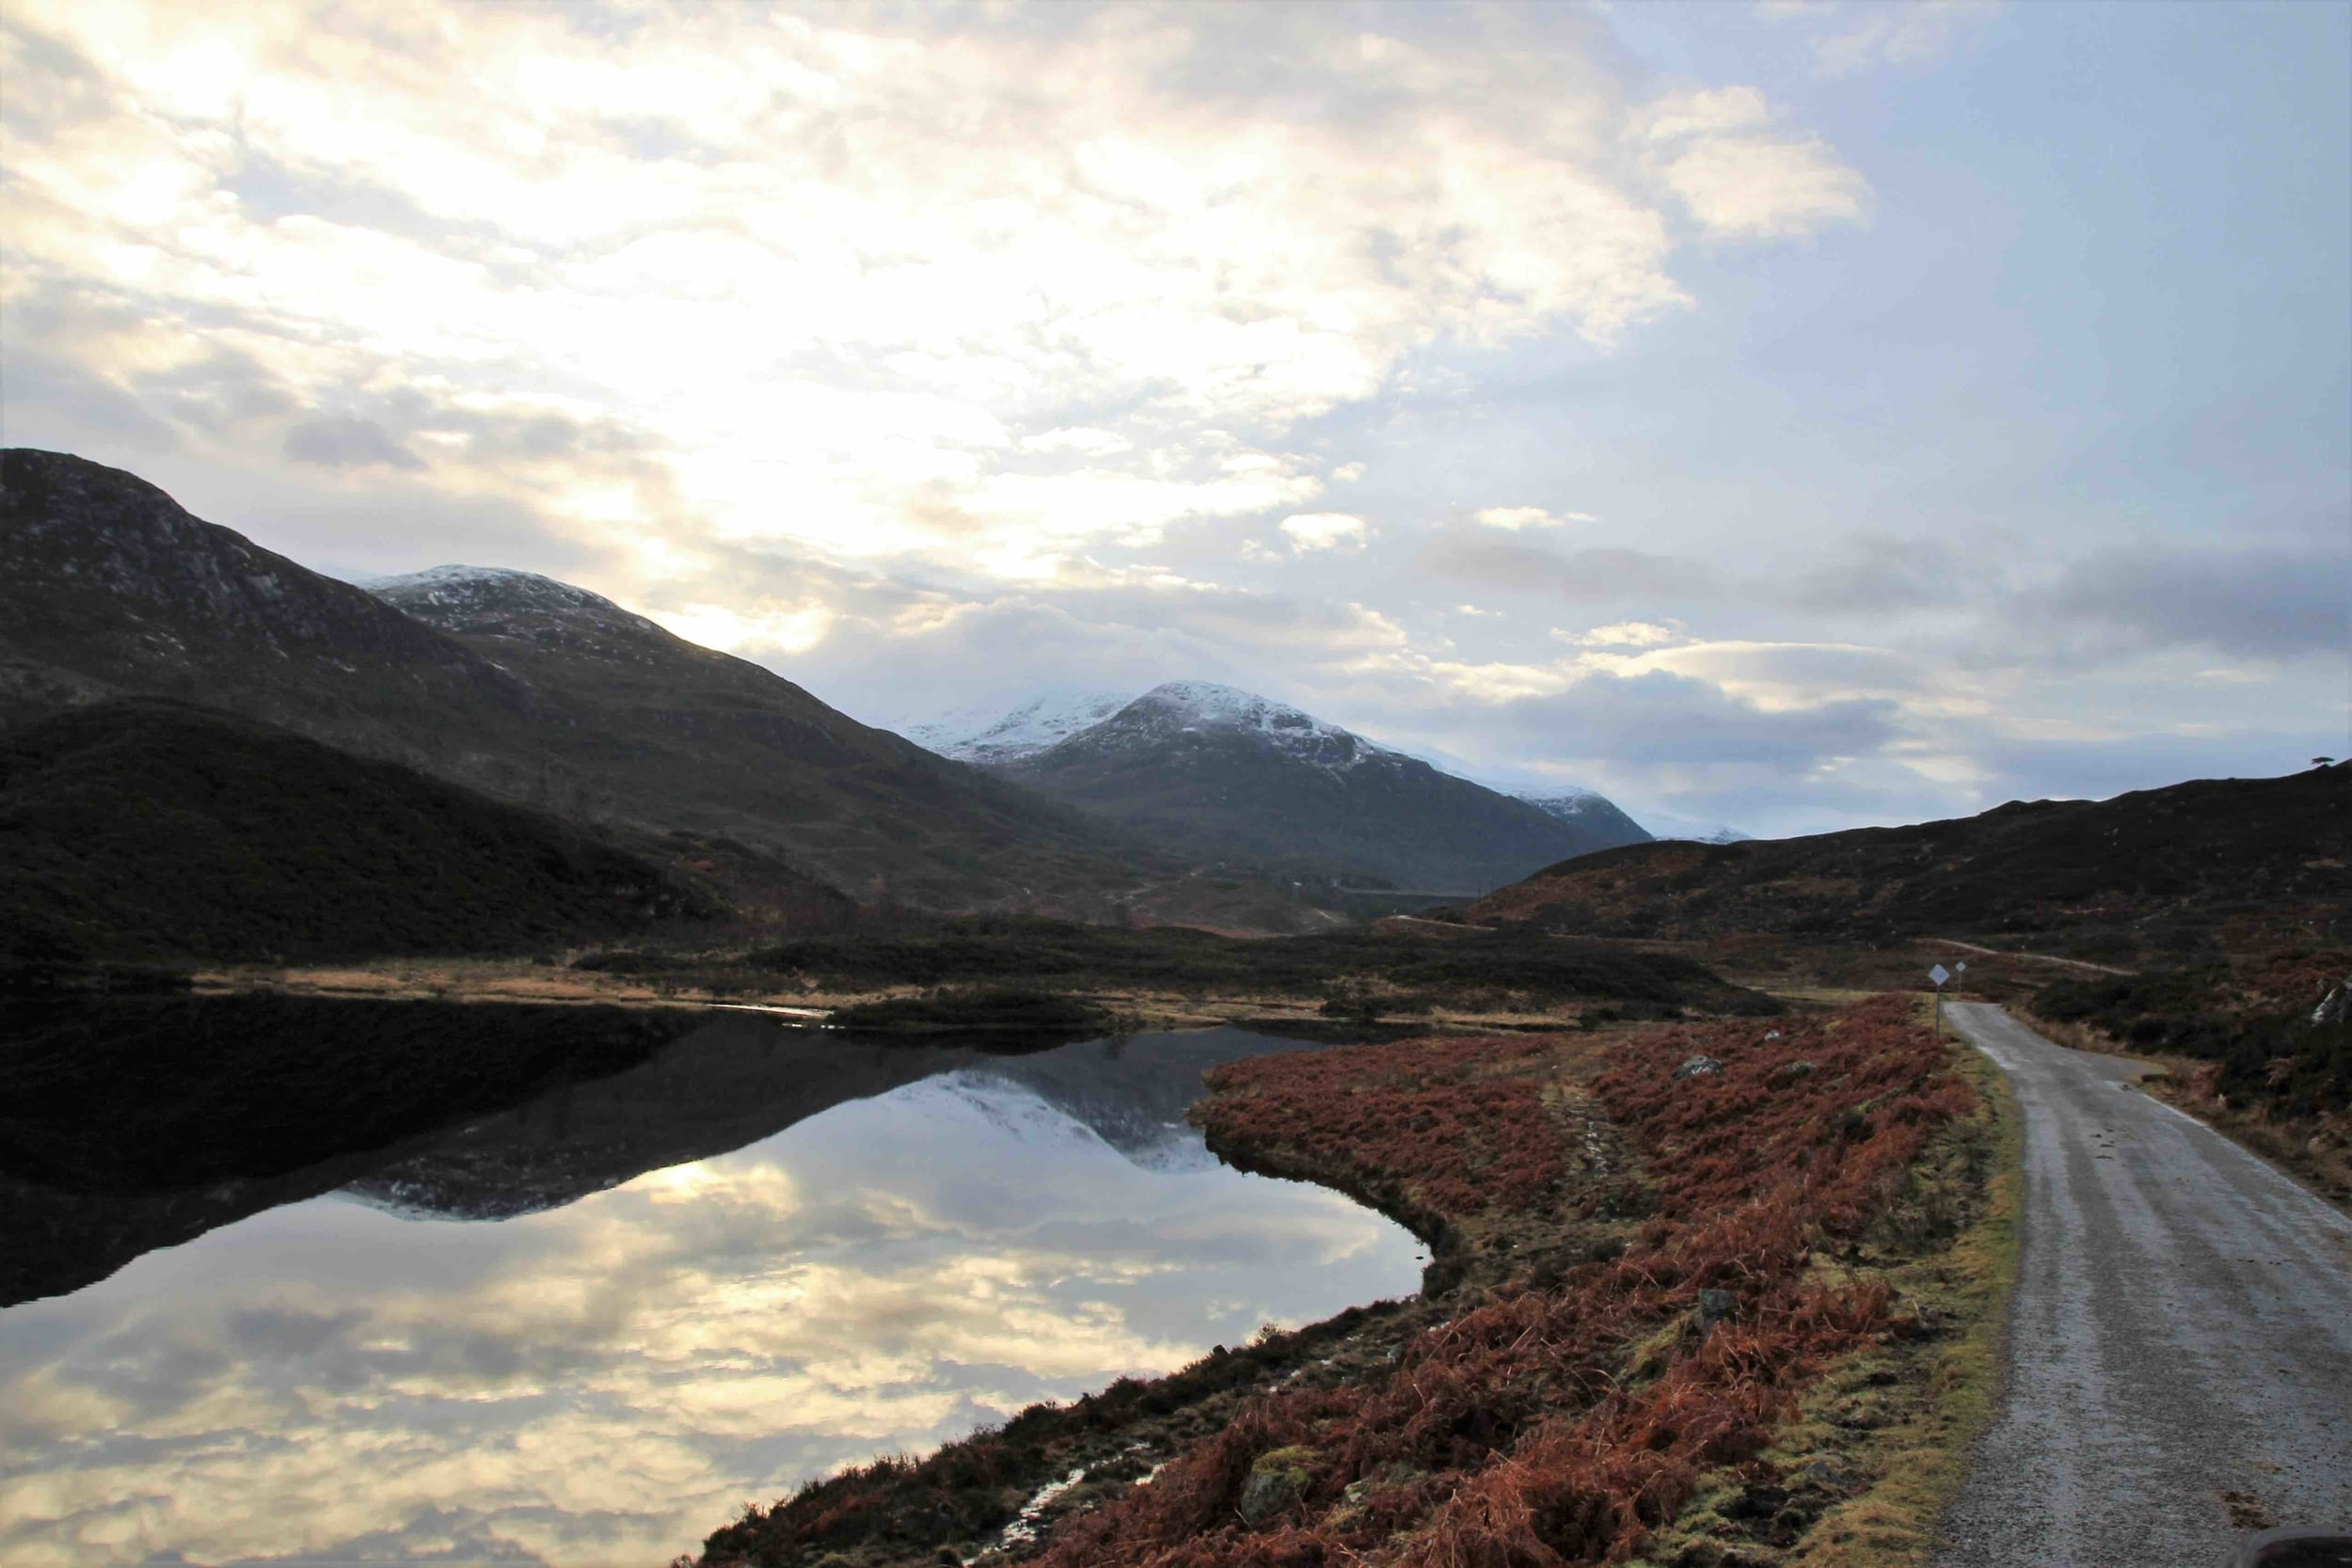 Road near Glen Cannich, Inverness area, Scottish Highlands